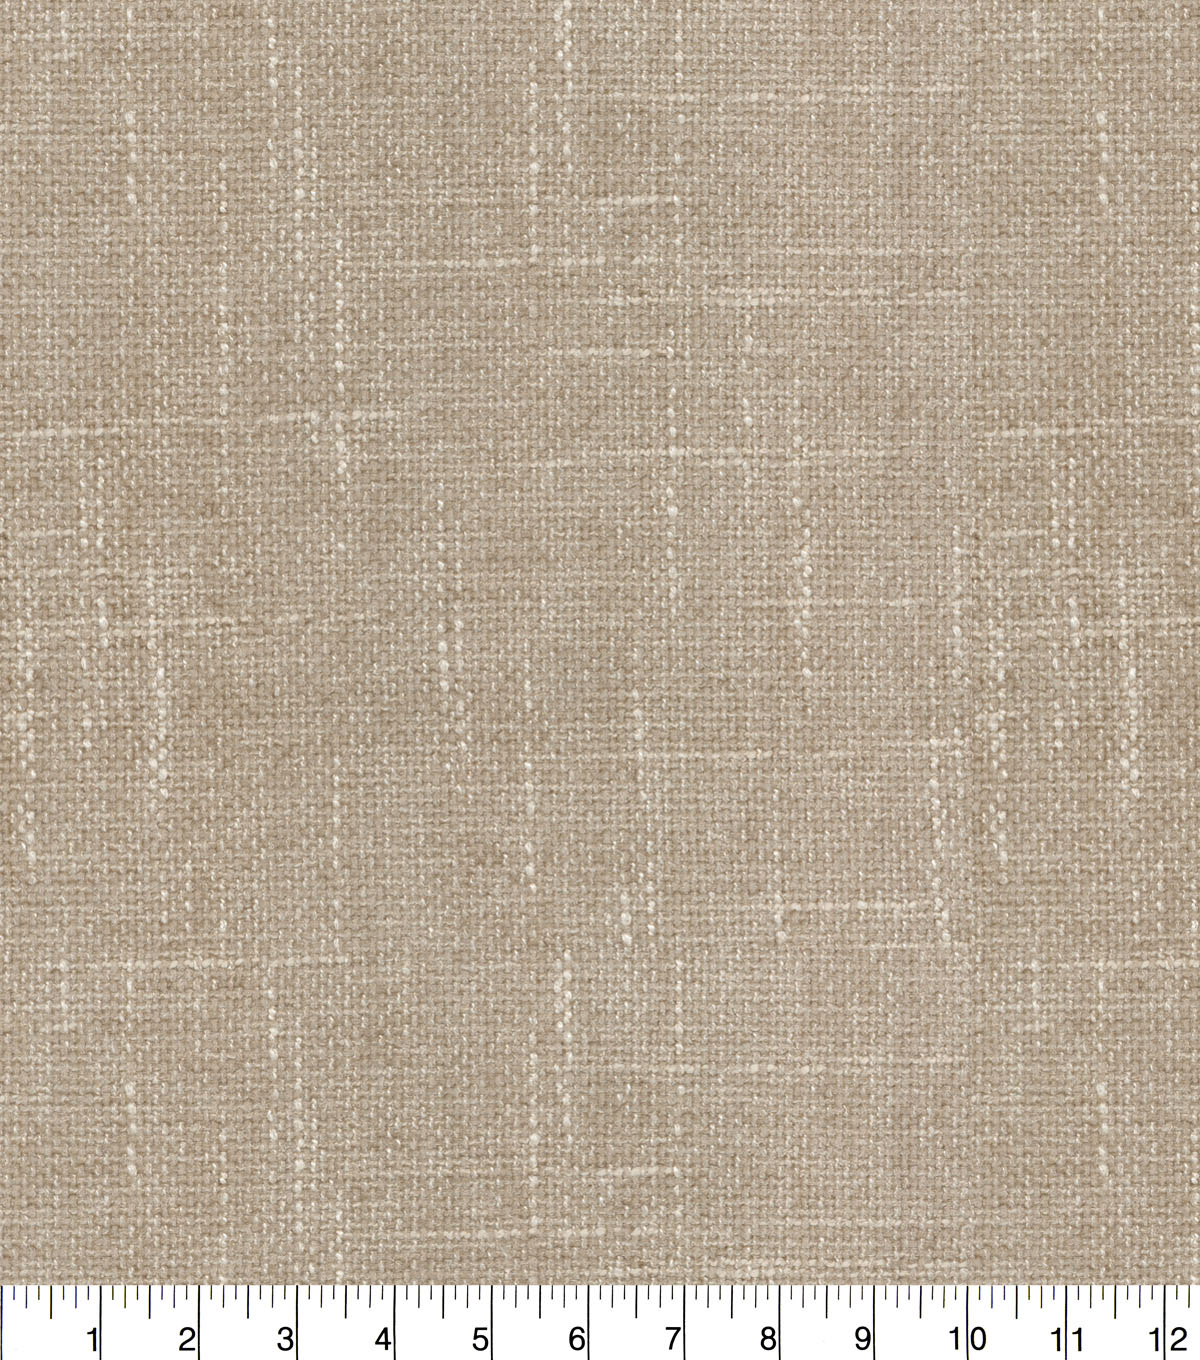 Home Decor 8\u0022x8\u0022 Fabric Swatch-P/K Lifestyles Mixology Sterling